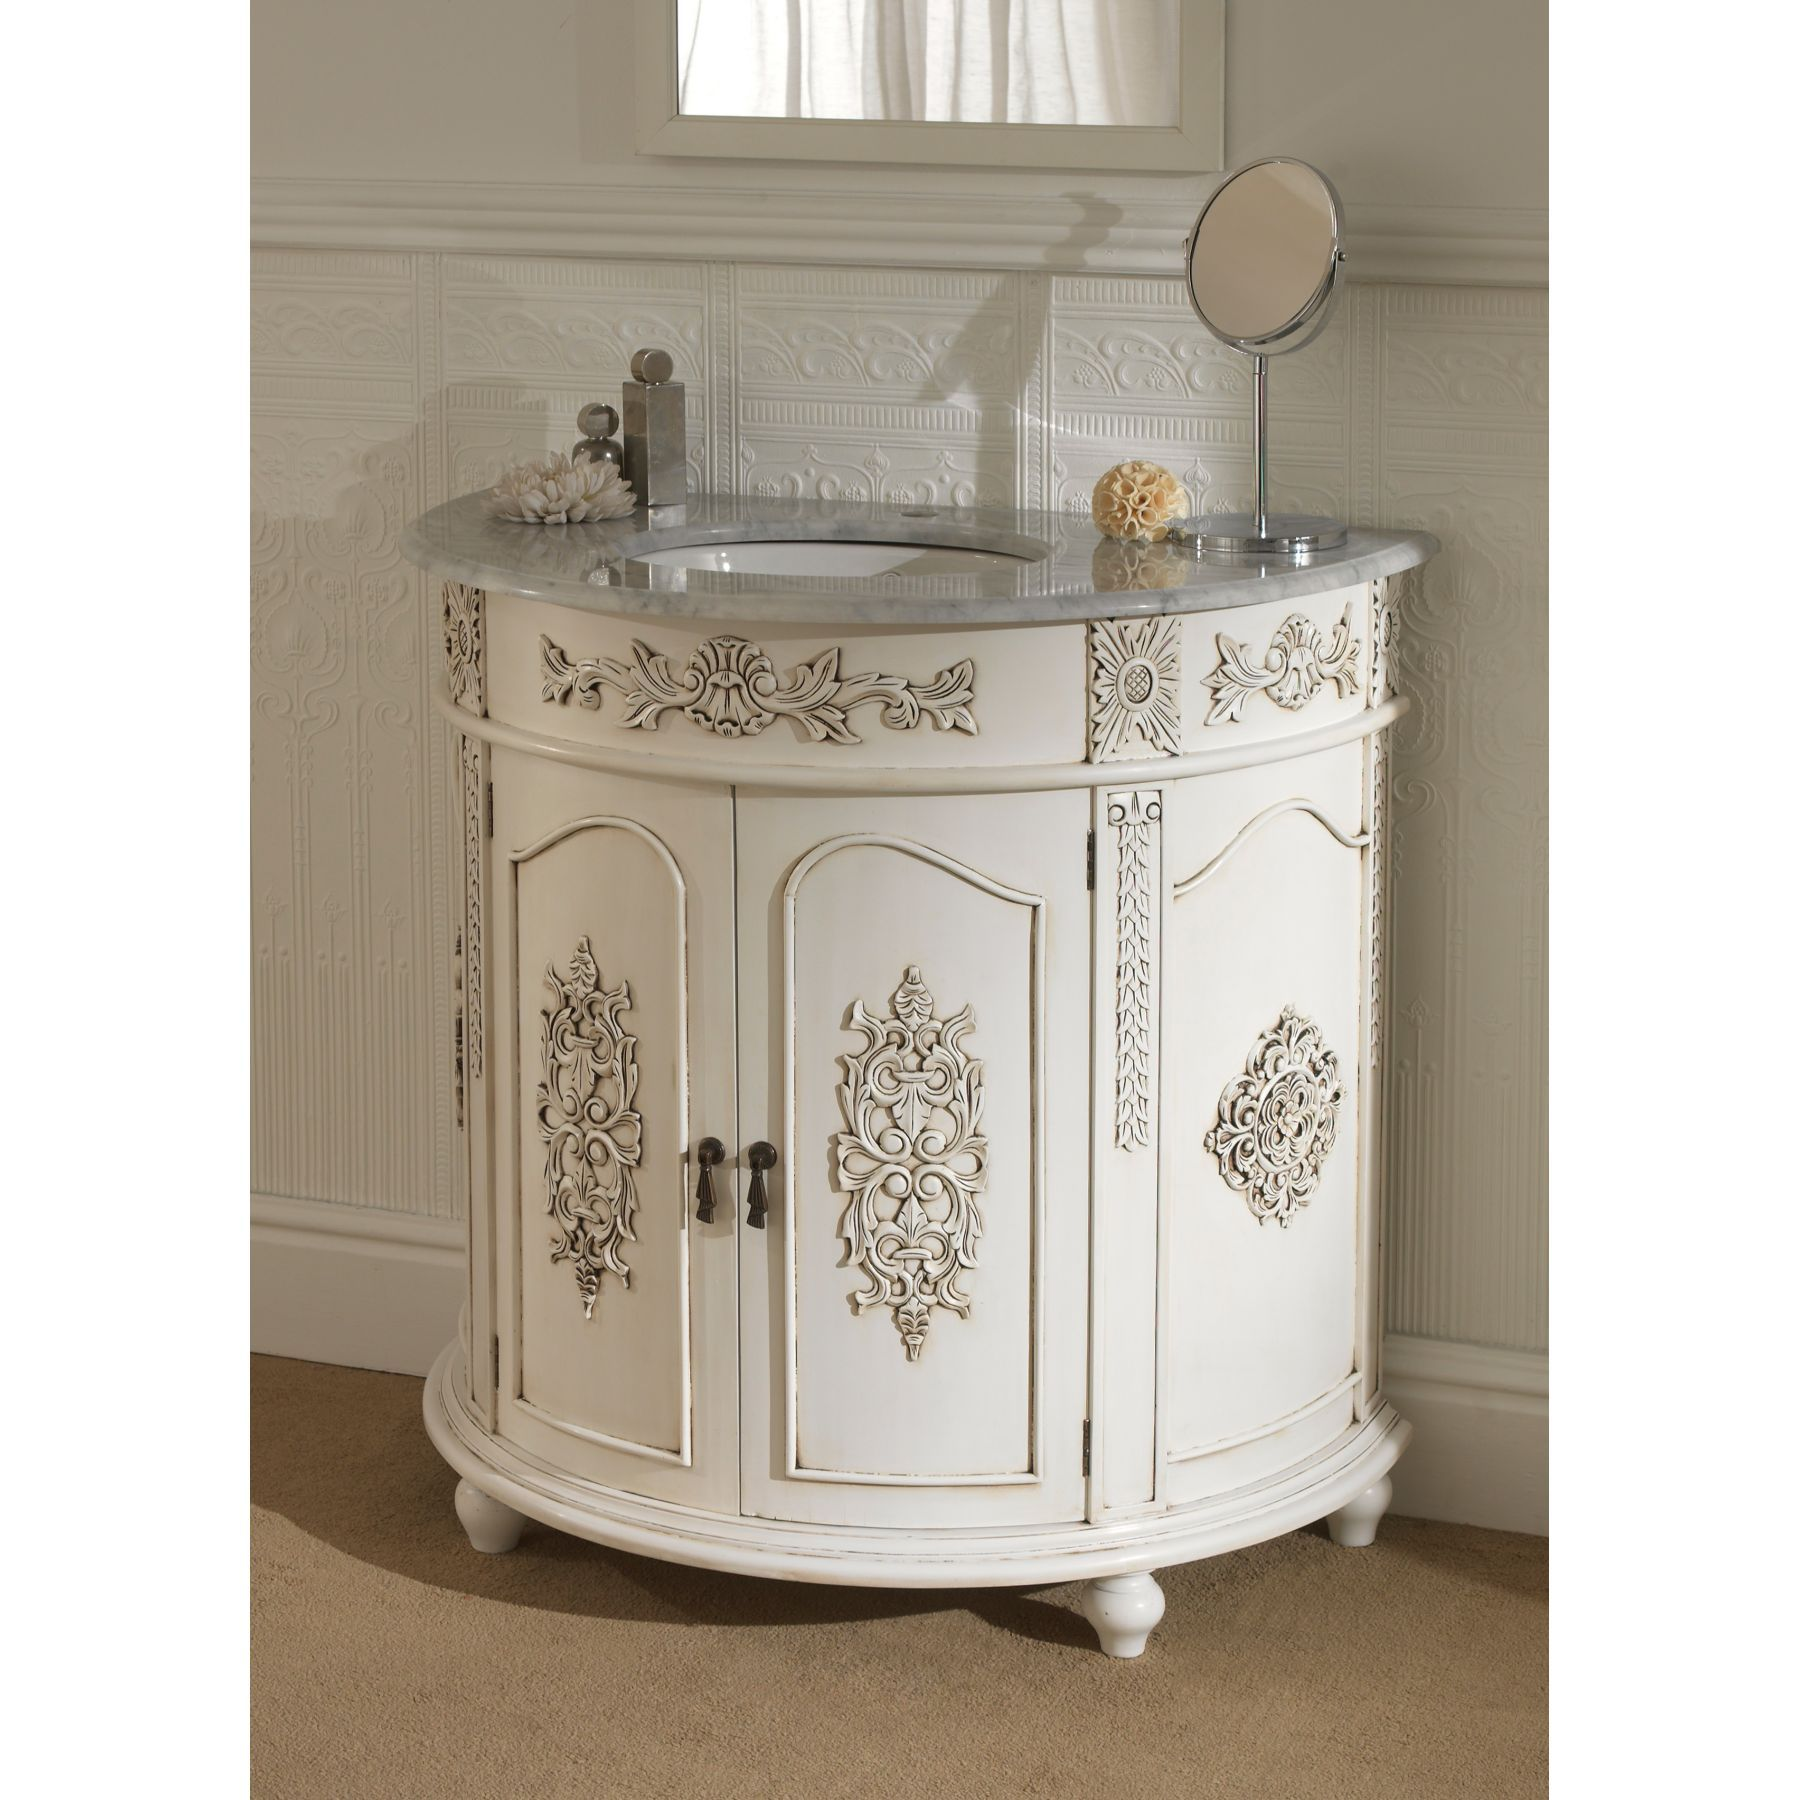 Amazing Antique Bathroom Vanities Bathroom Design Ideas With Impressive Antique Bathroom Vanities Inspiration Design